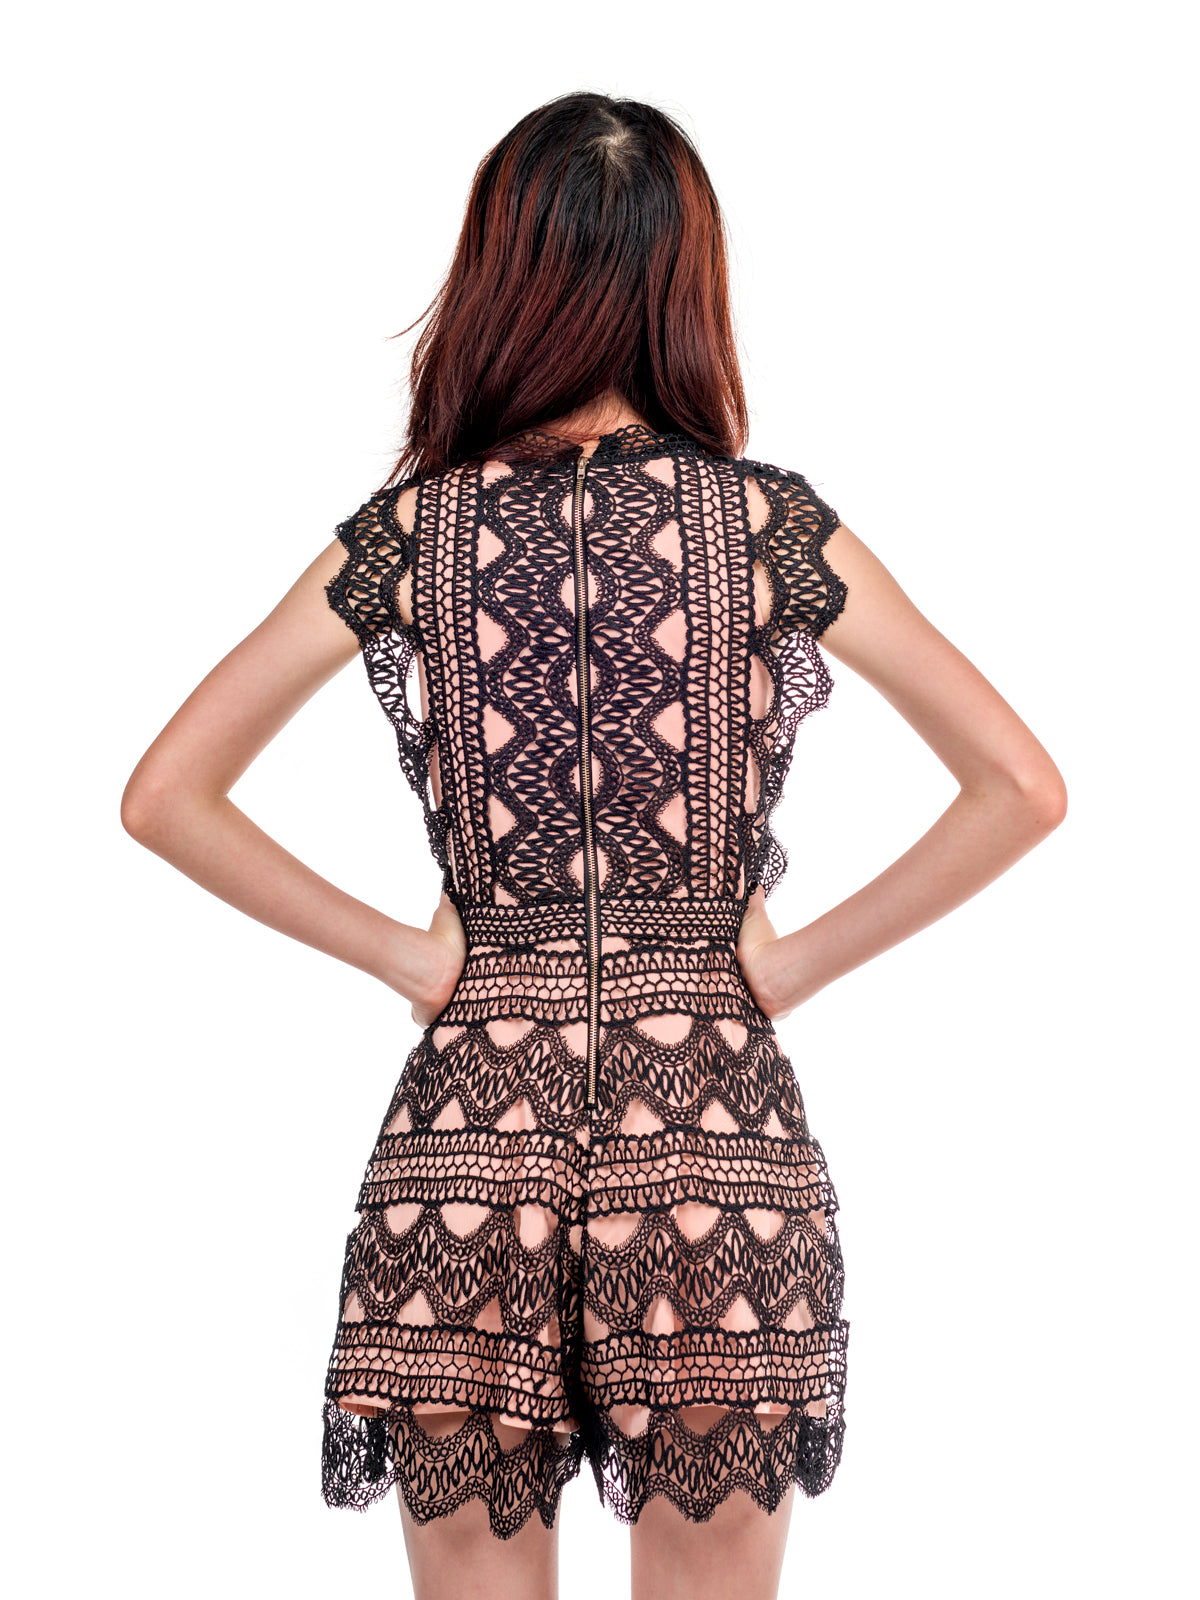 Estelle Crochet Lace Romper Black